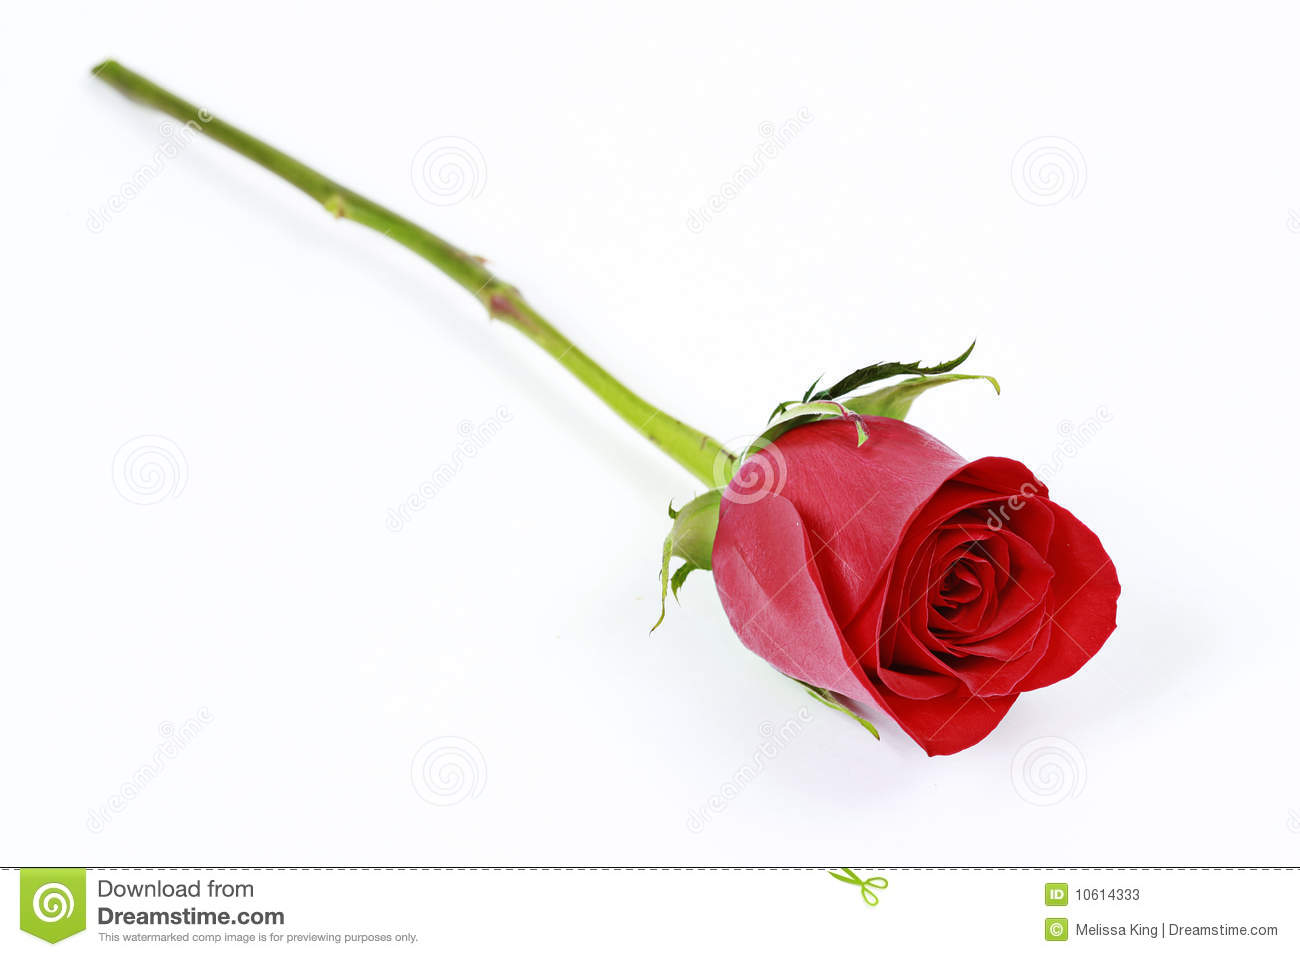 Beautiful Single Red Rose Flower Isolated Royalty Free: One Long Stem Red Rose Stock Image. Image Of Flora, White